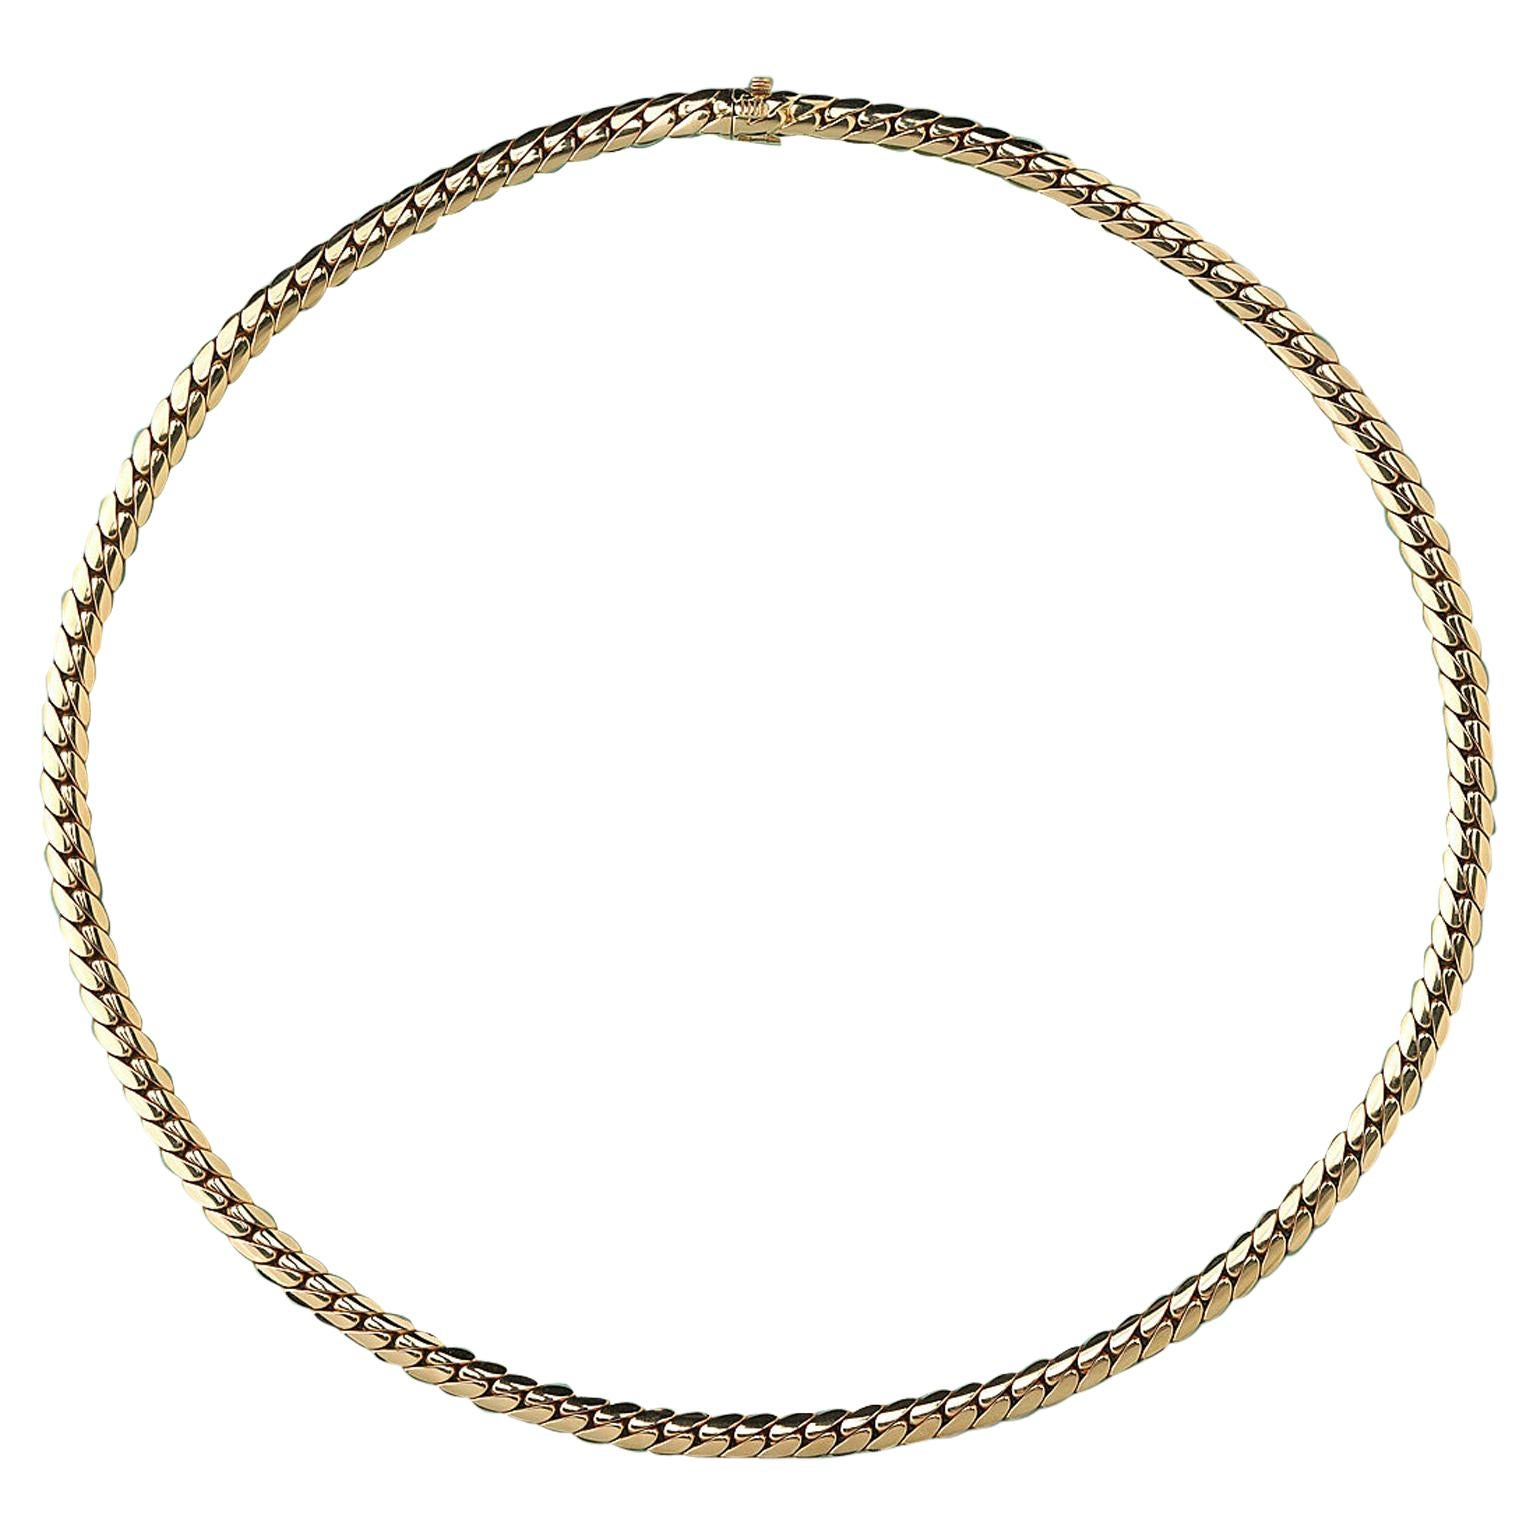 Gold Cartier Curb Link Chain